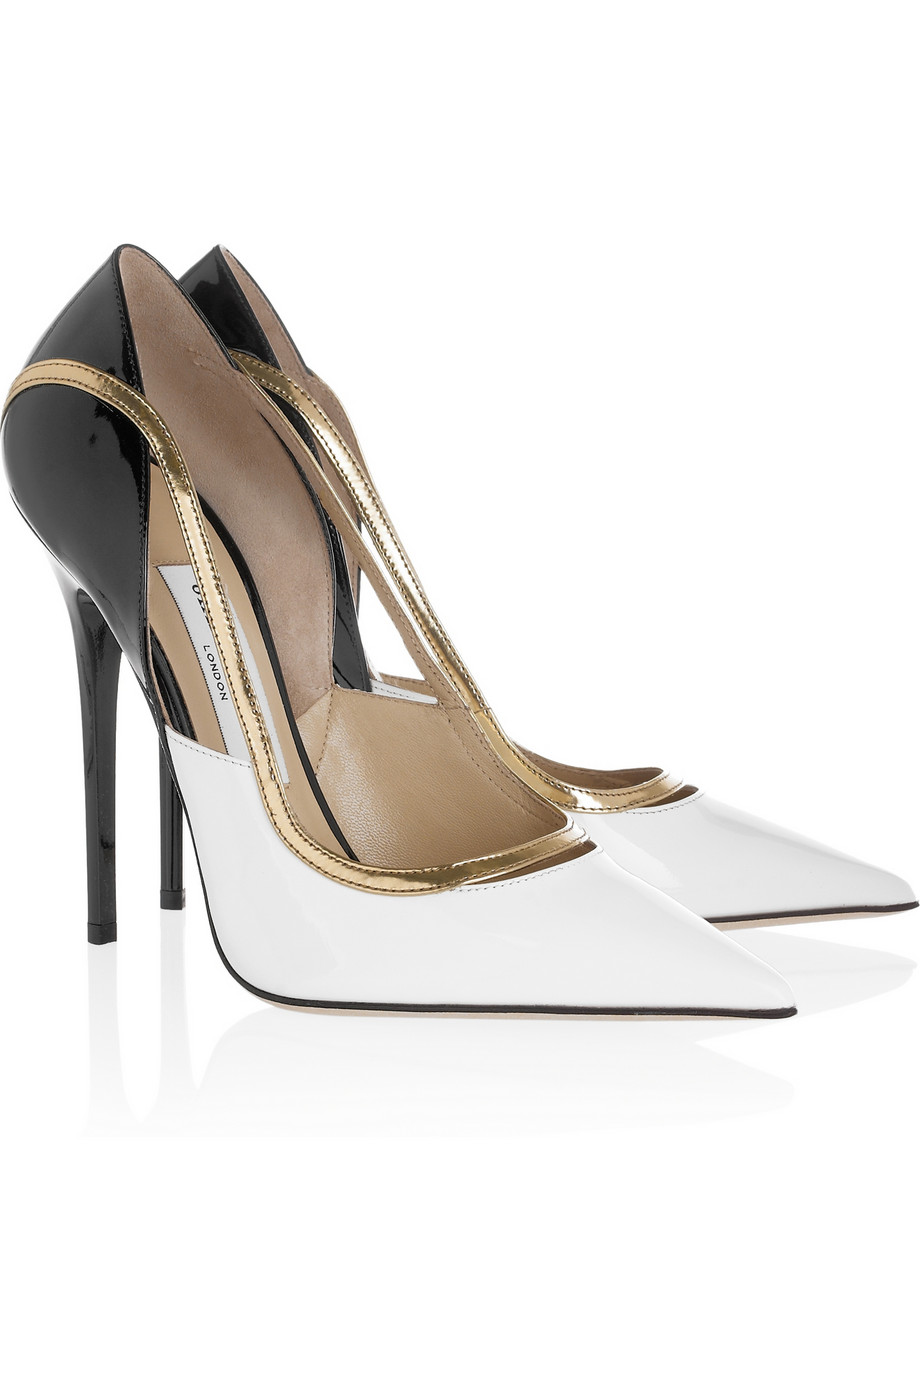 Jimmy Choo Viper Patentleather Pumps In White | Lyst